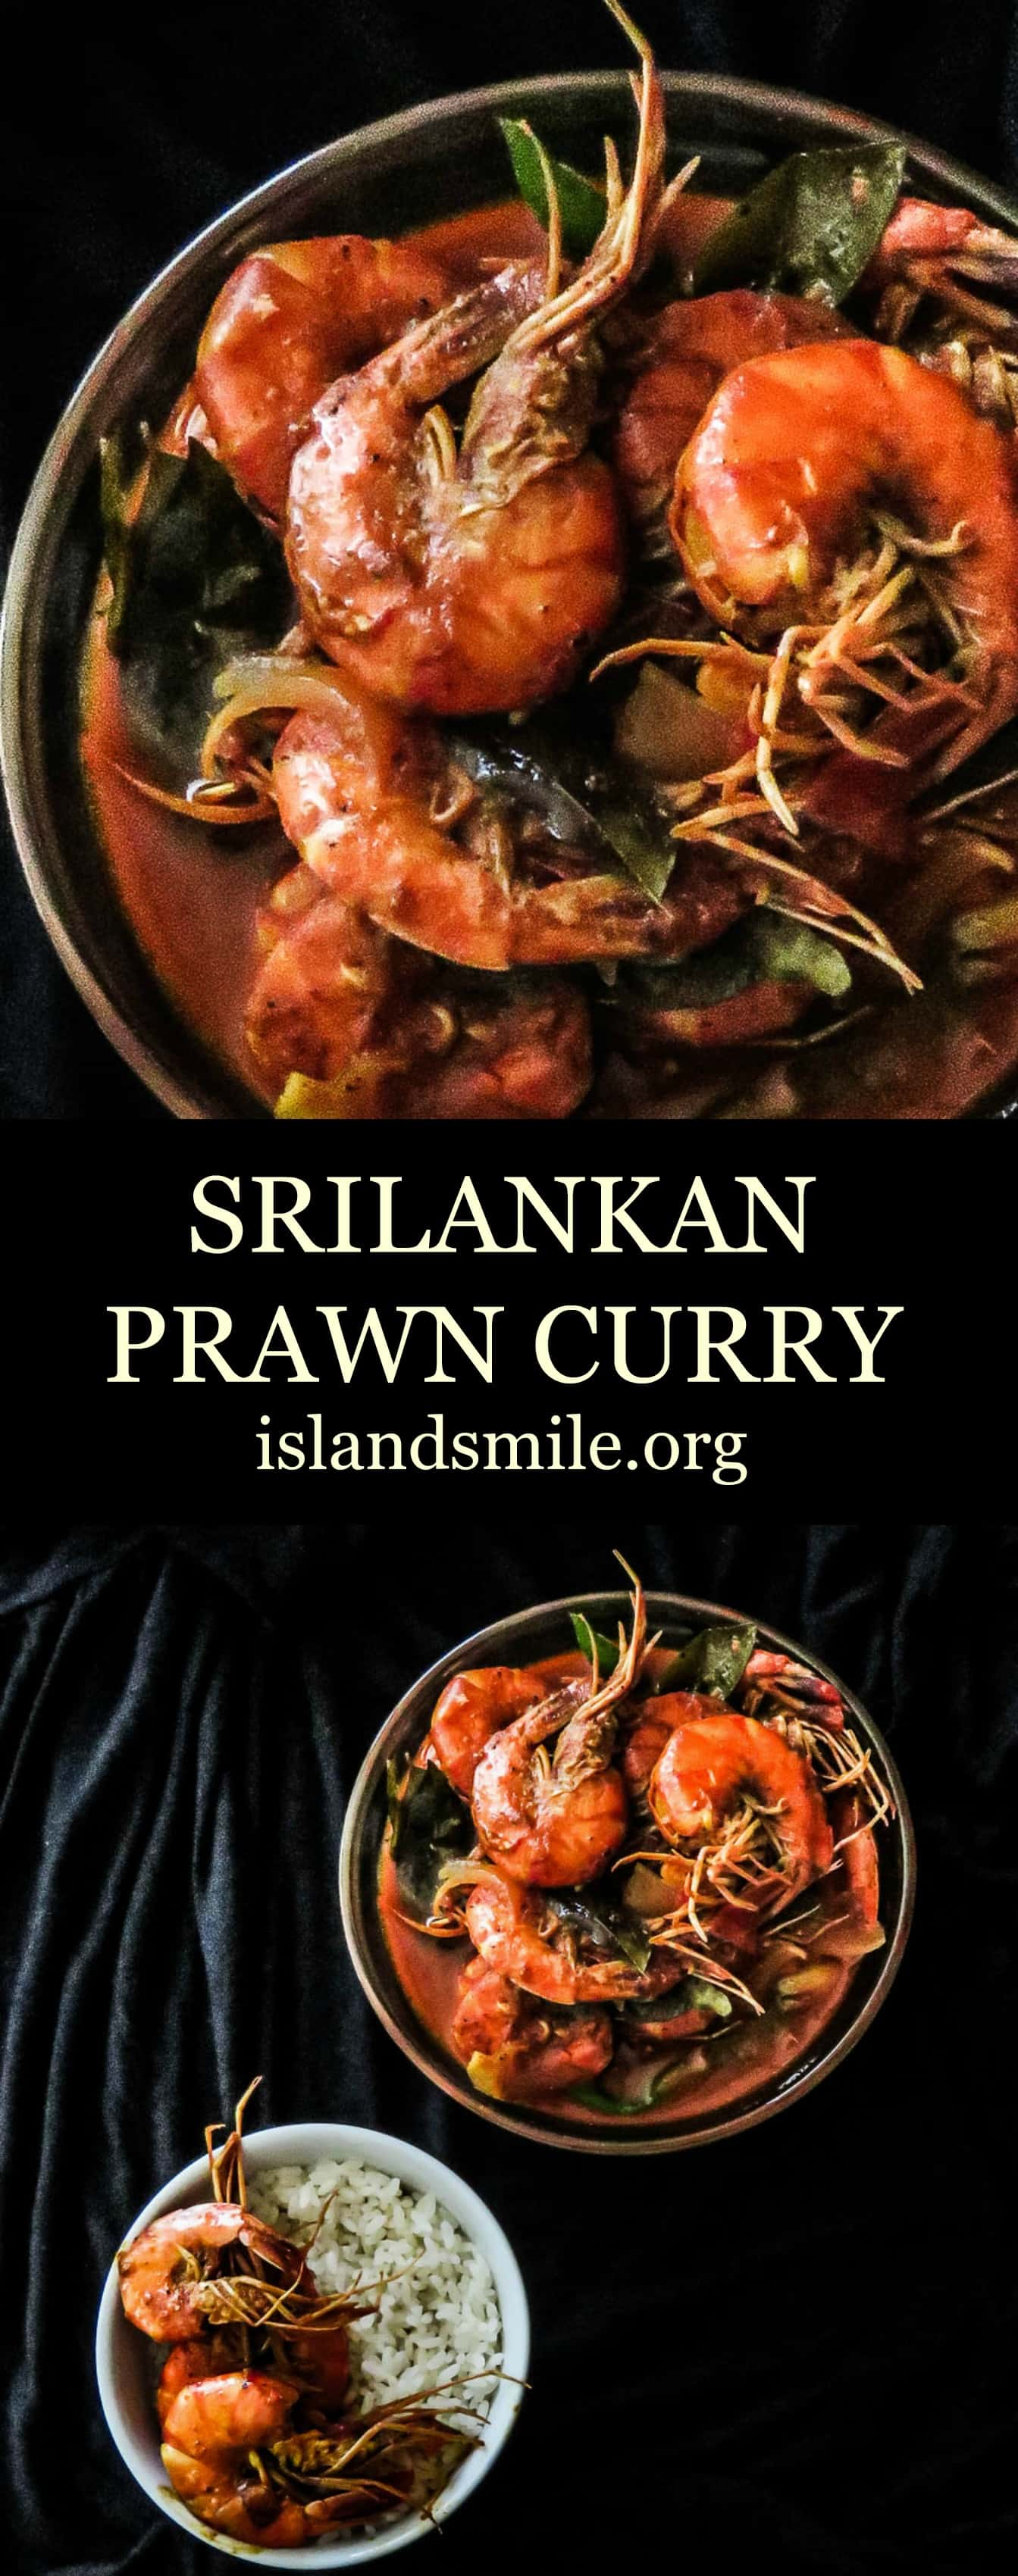 Srilankan prawn curry